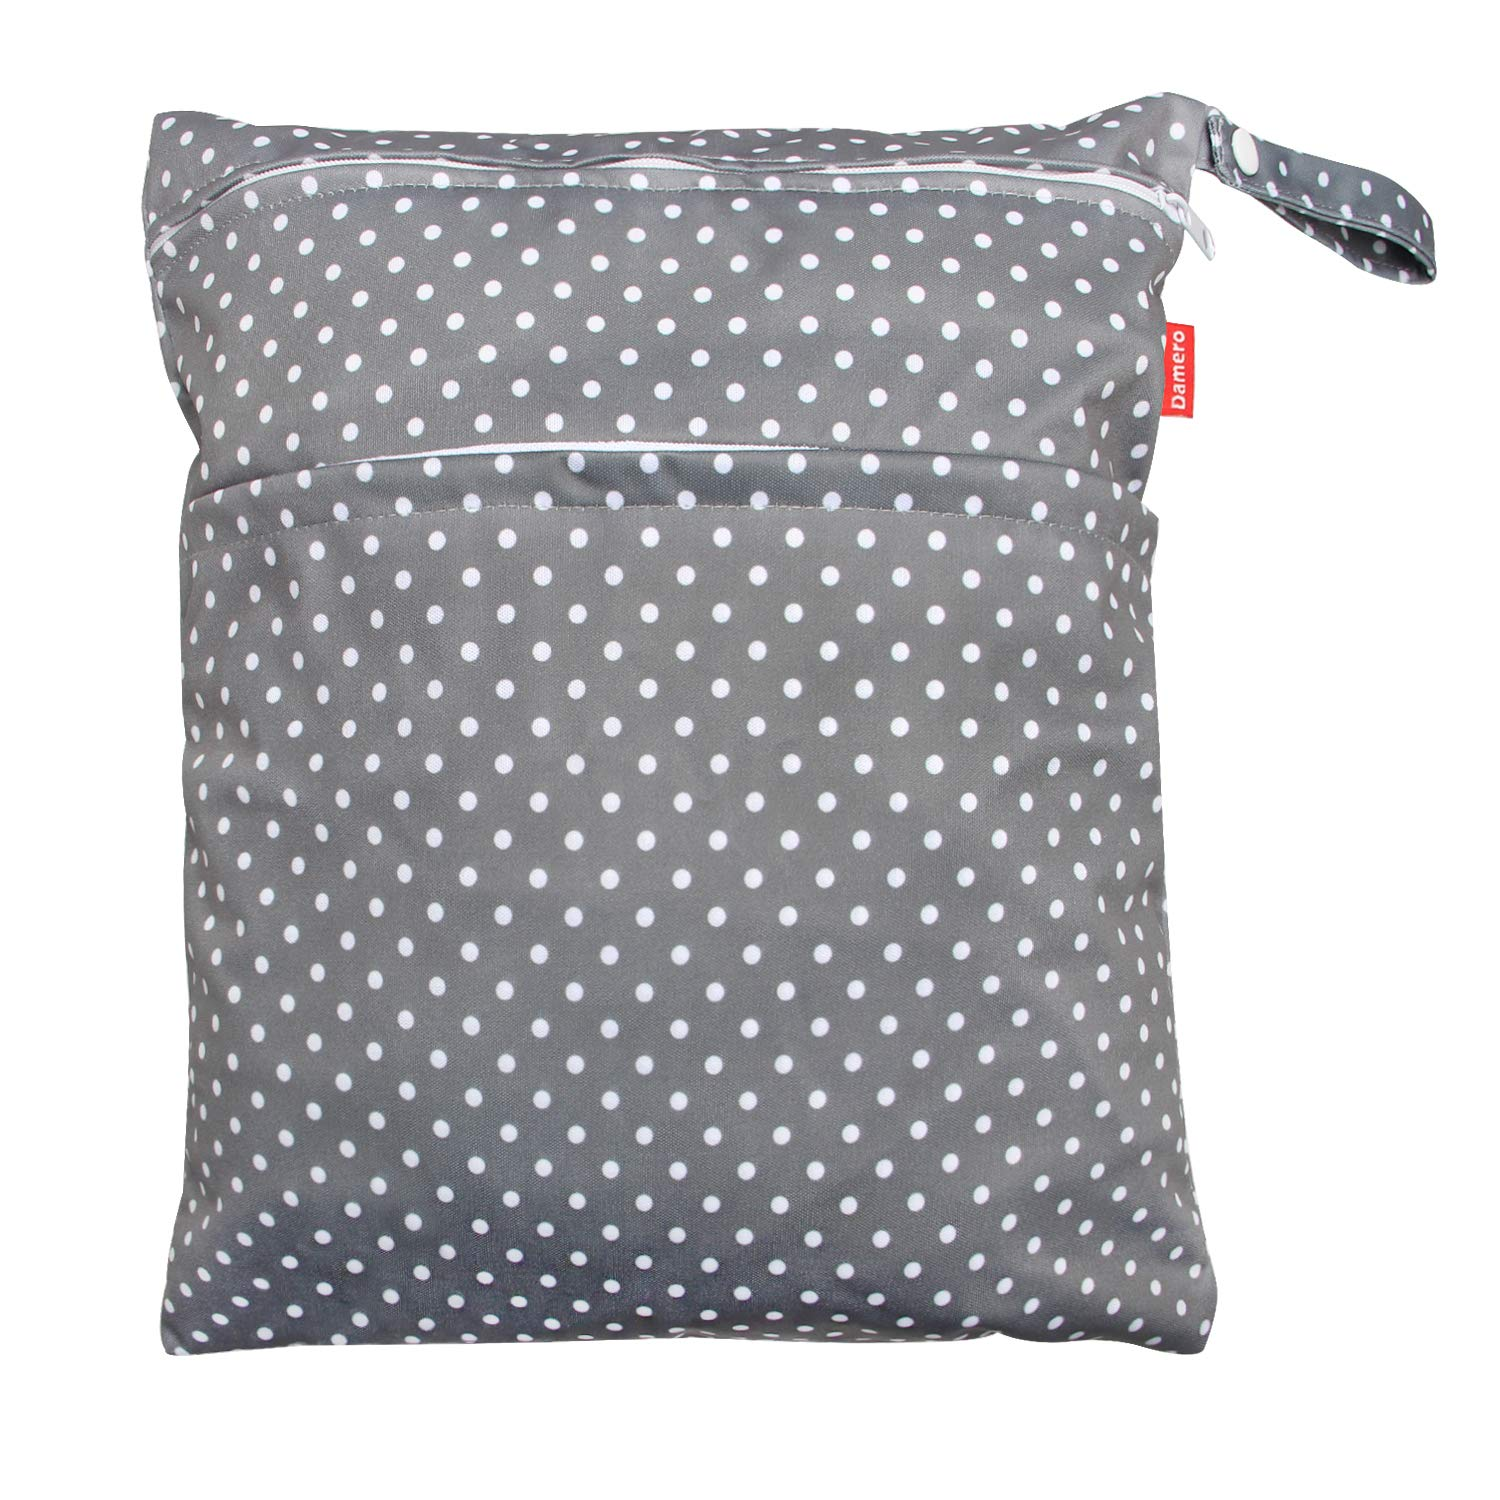 Easy to Grab and Go Clothes Small, Gray Dots Damero Travel Wet and Dry Bag with Handle for Cloth Diaper Swimsuit and More Pumping Parts